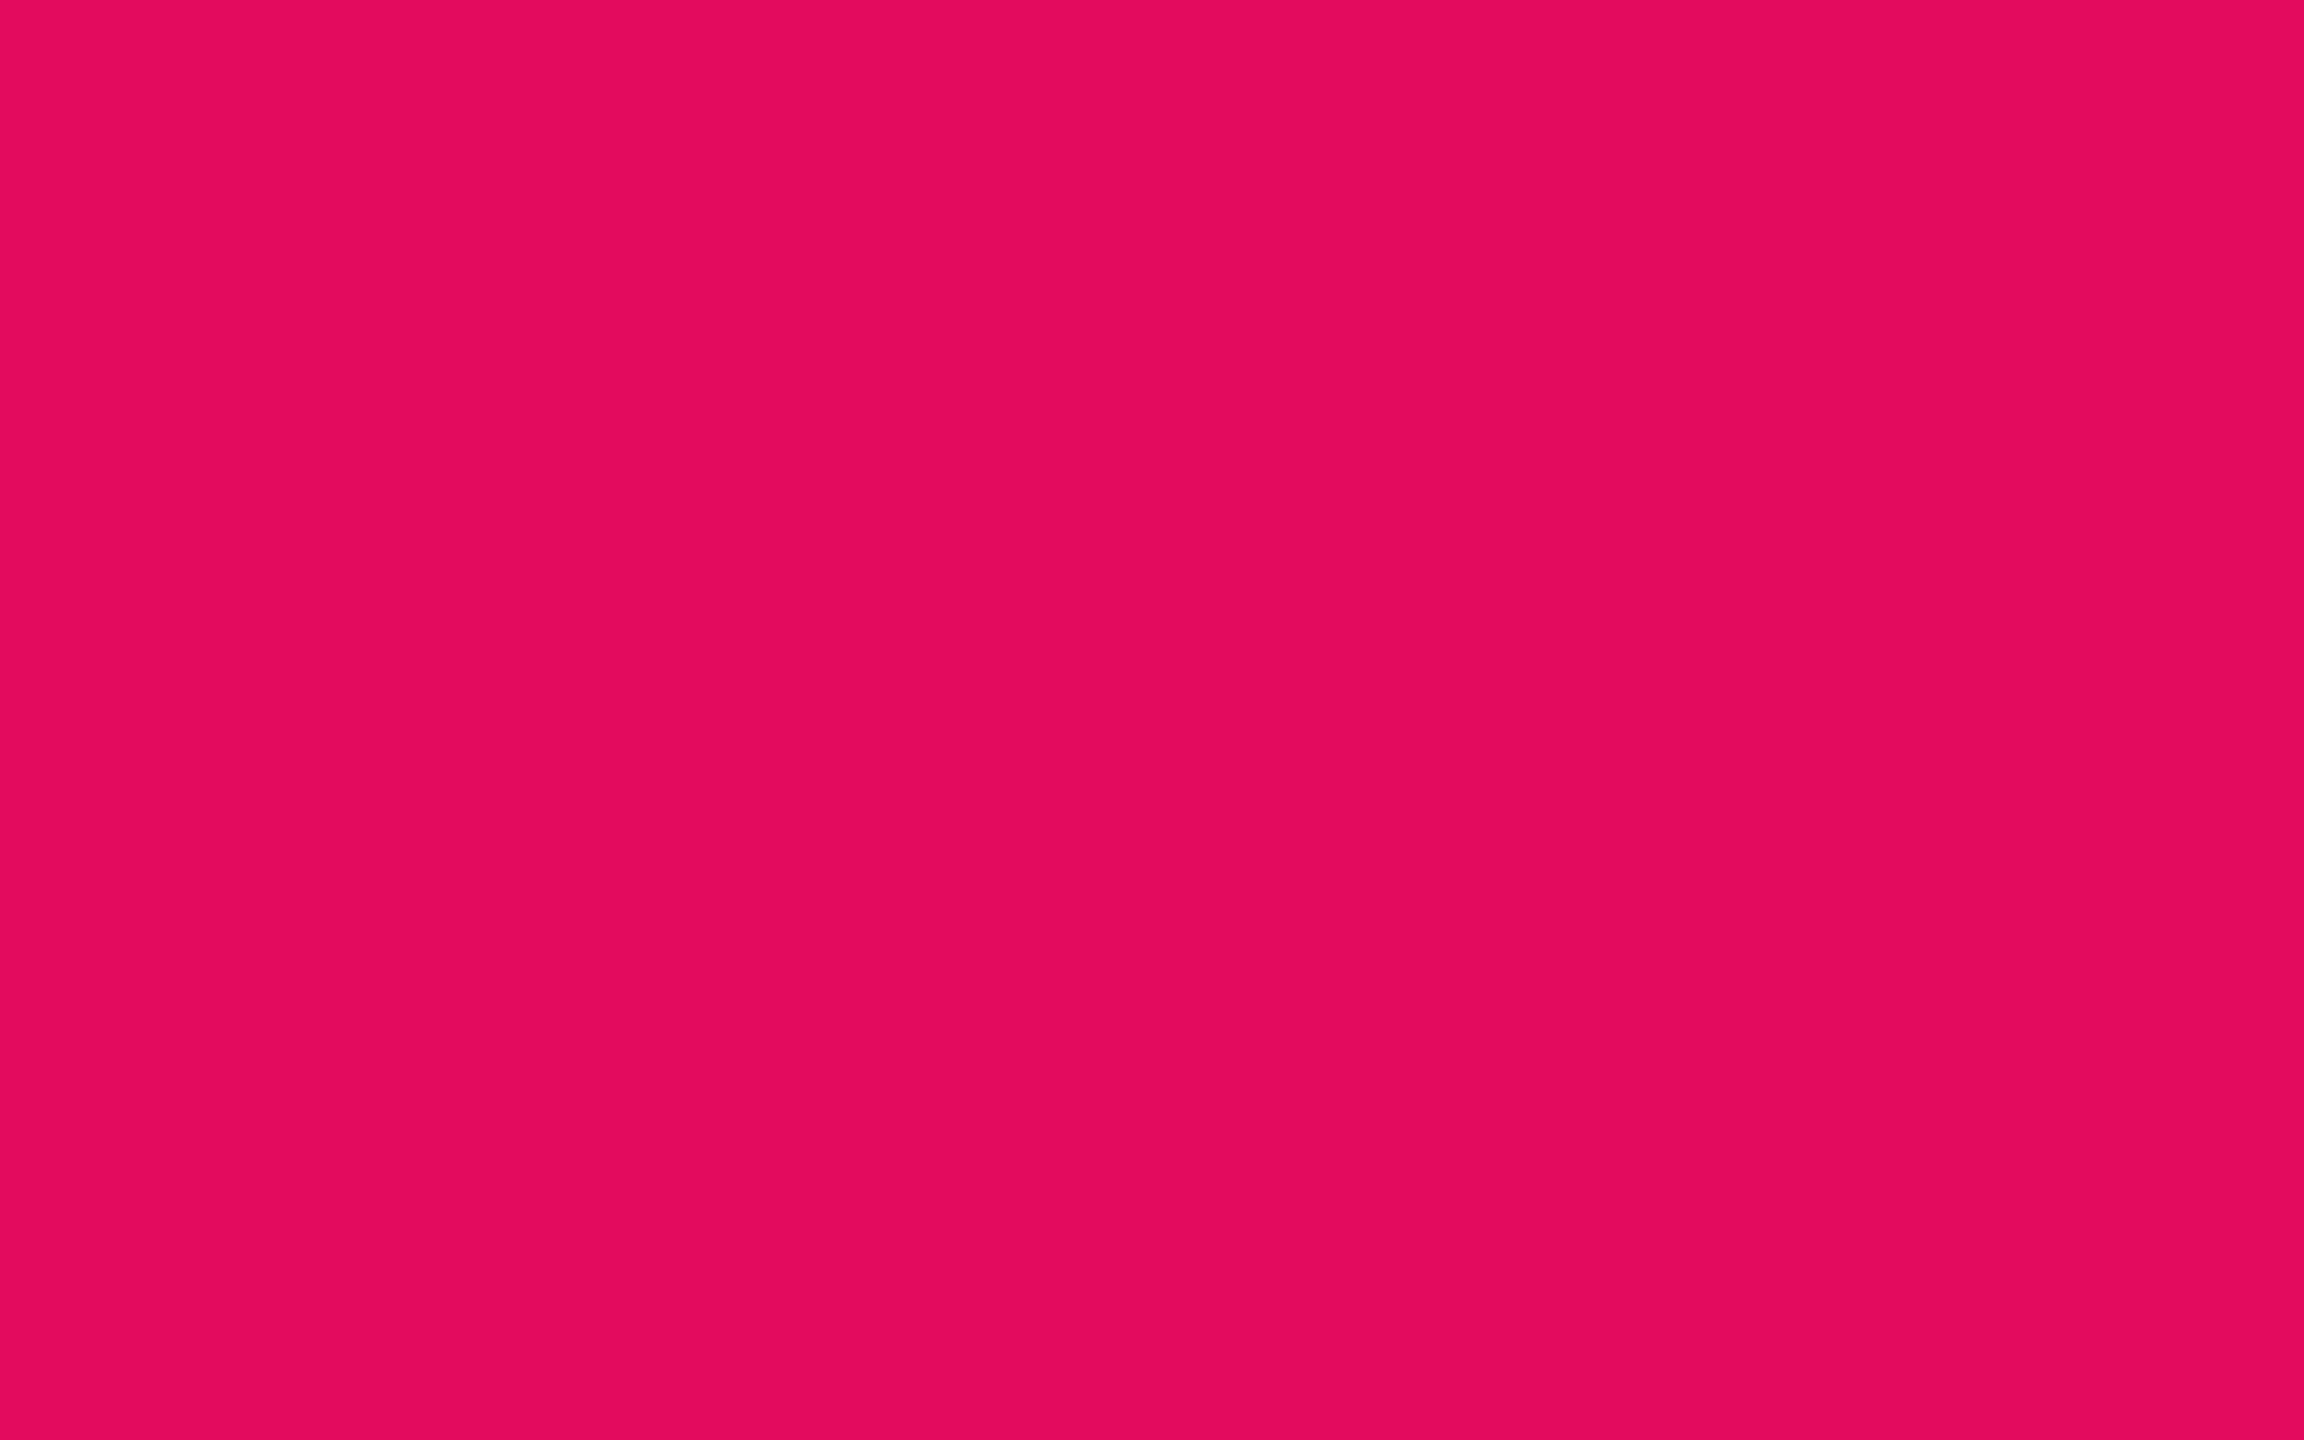 2304x1440 Raspberry Solid Color Background